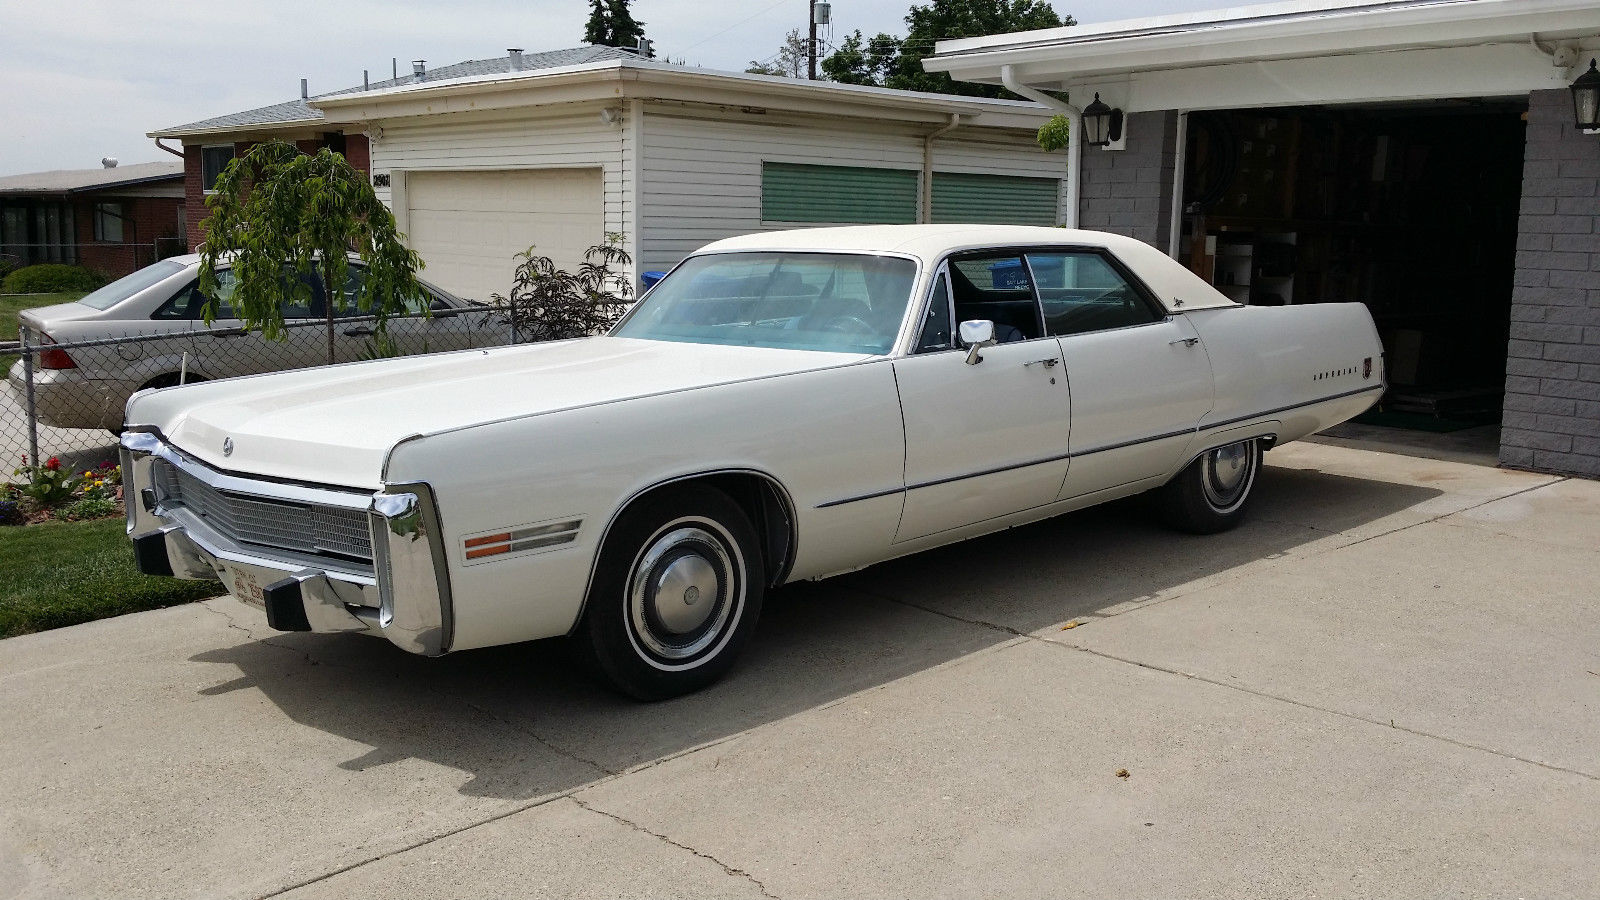 chrysler imperial lebaron html with 1973 Imperial Le Baron 4 Door Hardtop on 144578 1971 Imperial Lebaron 2 Door Hardtop Rare Sunroof Survivor also G12 in addition 171396 1972 Imperial Lebaron 4 Door Hardtop as well Index likewise 23575 1973 chrysler imperial lebaron 7   2l.